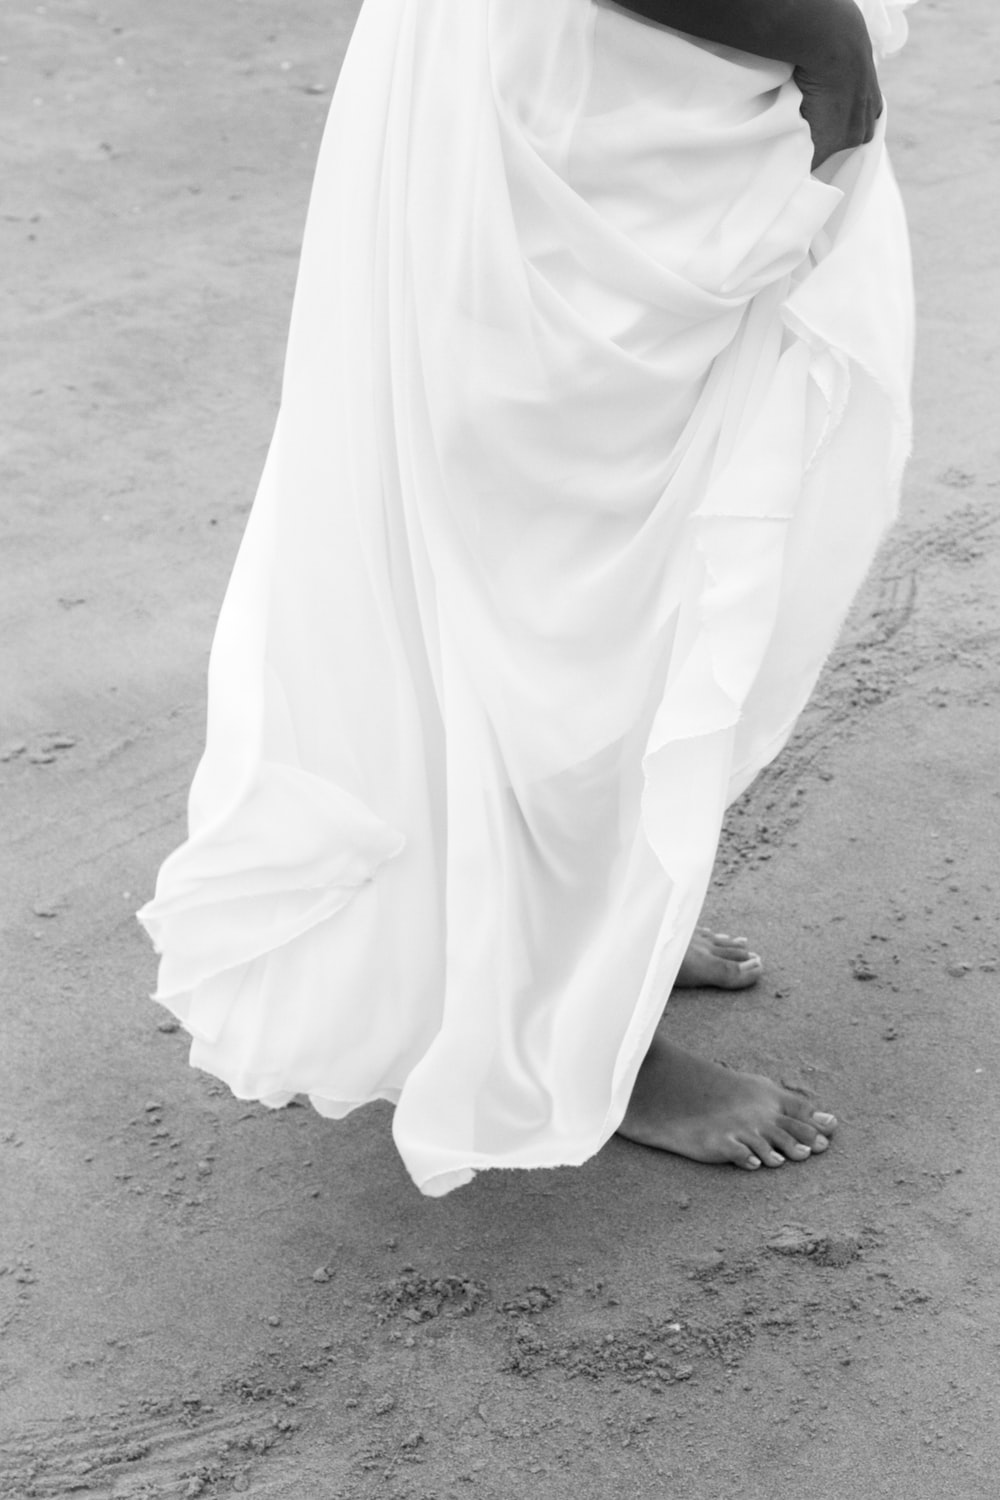 barefooted woman in long skirt during daytime greyscale photography